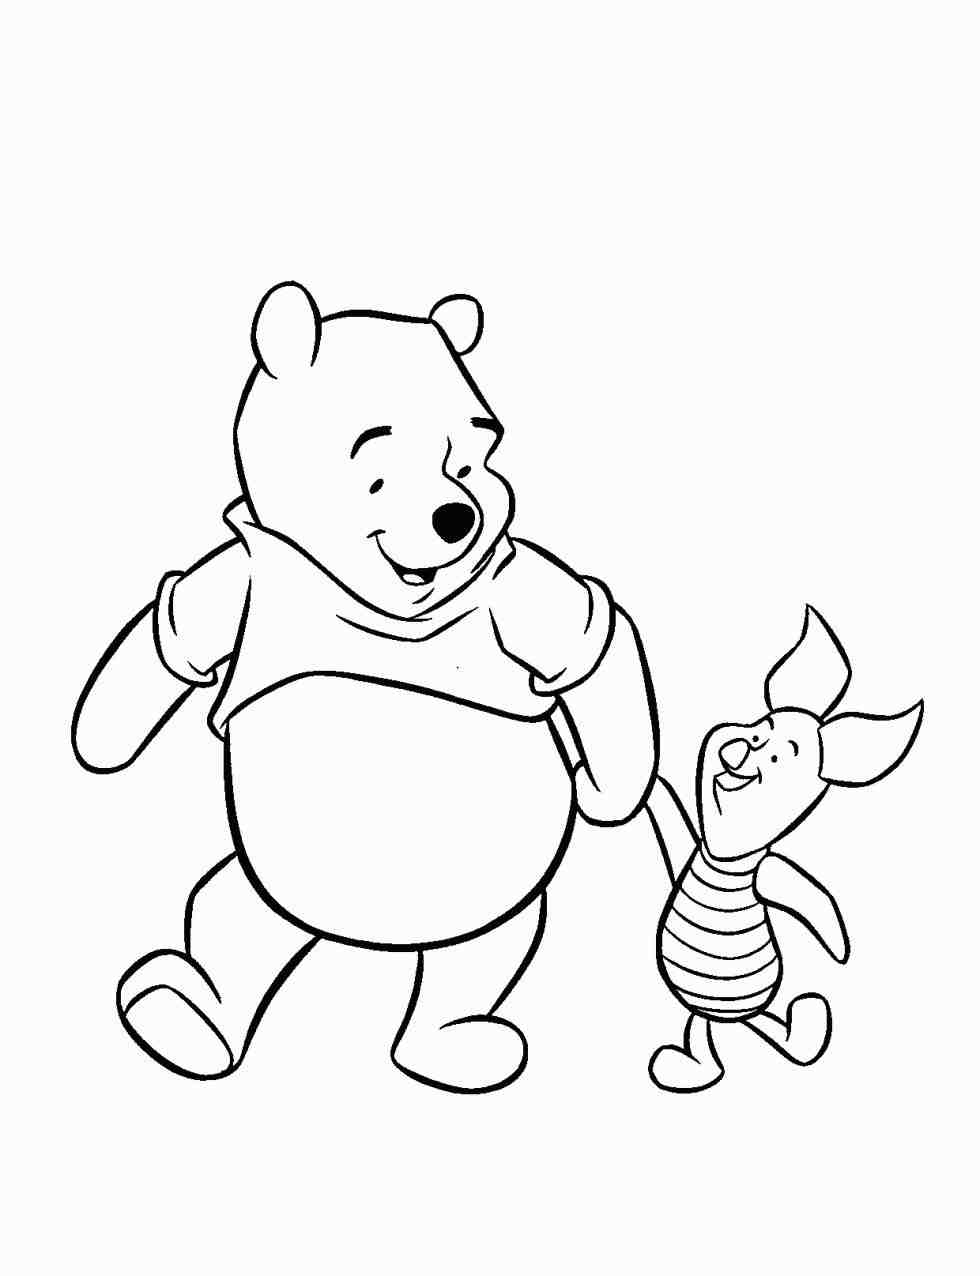 980x1276 The Images Collection Of Pooh Drawings Of Tigger Coloring Pages